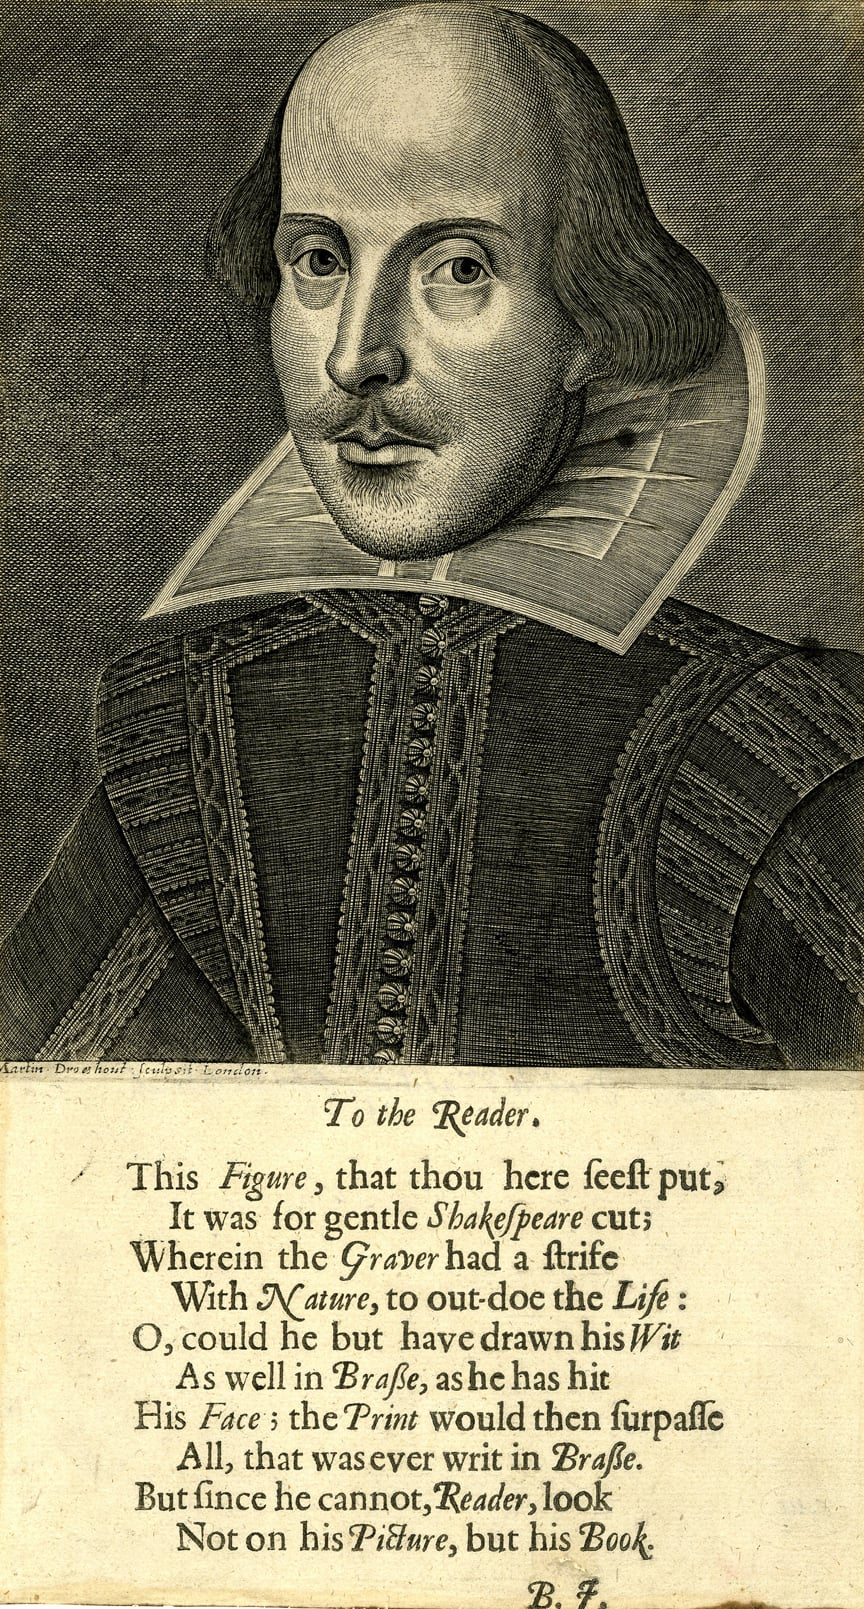 Martin Droeshout, Engraved portrait of Shakespeare, with verse by Ben Johnson below, 1623